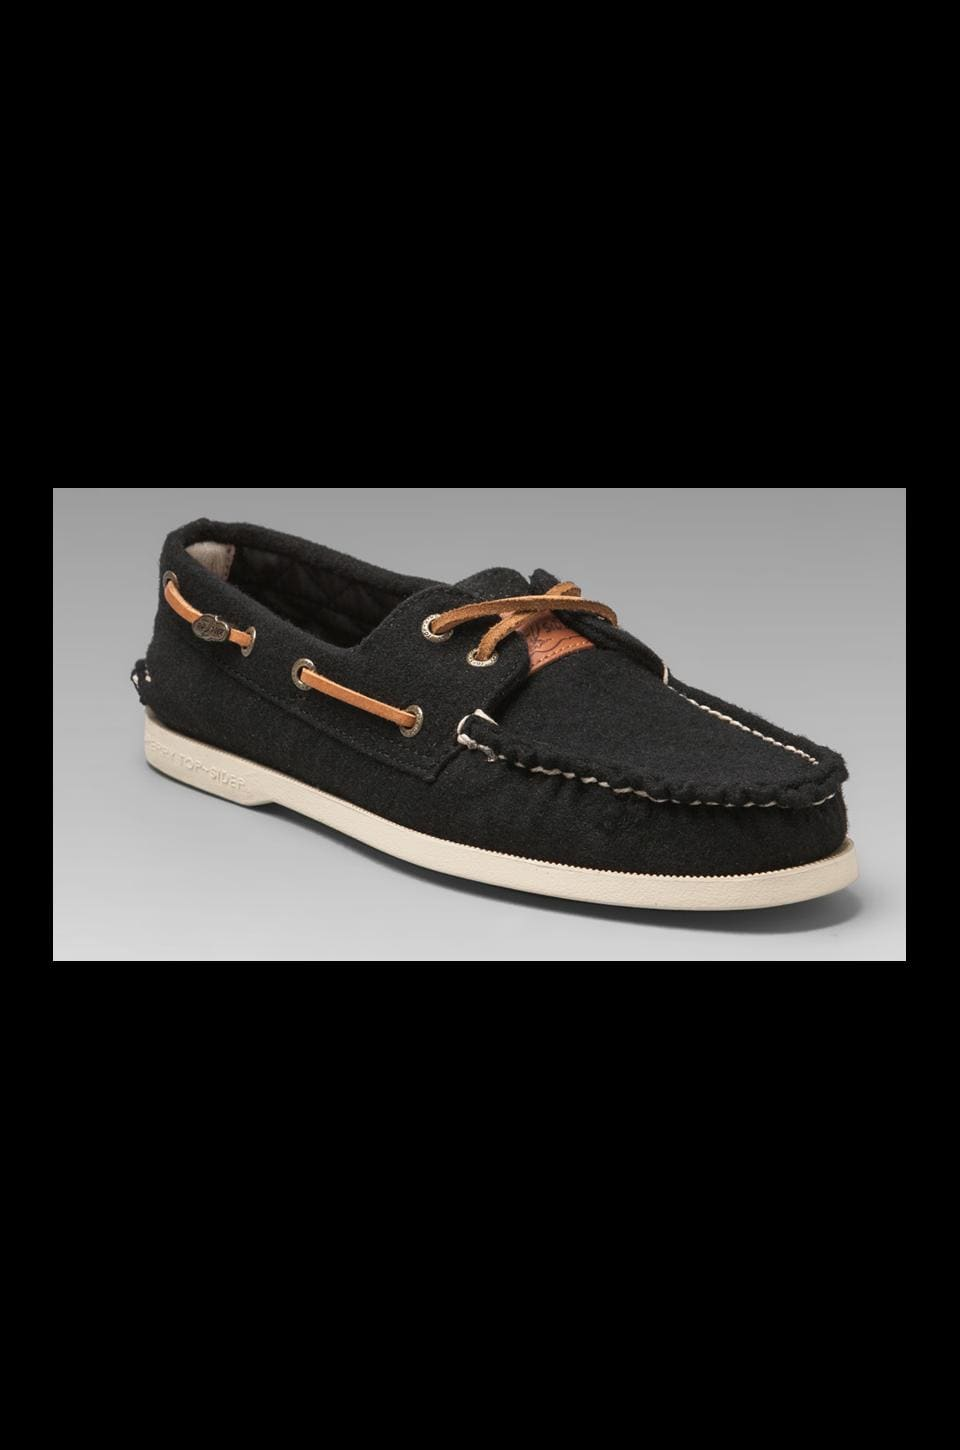 Sperry Top-Sider x Fidelity A/O in Navy Wool